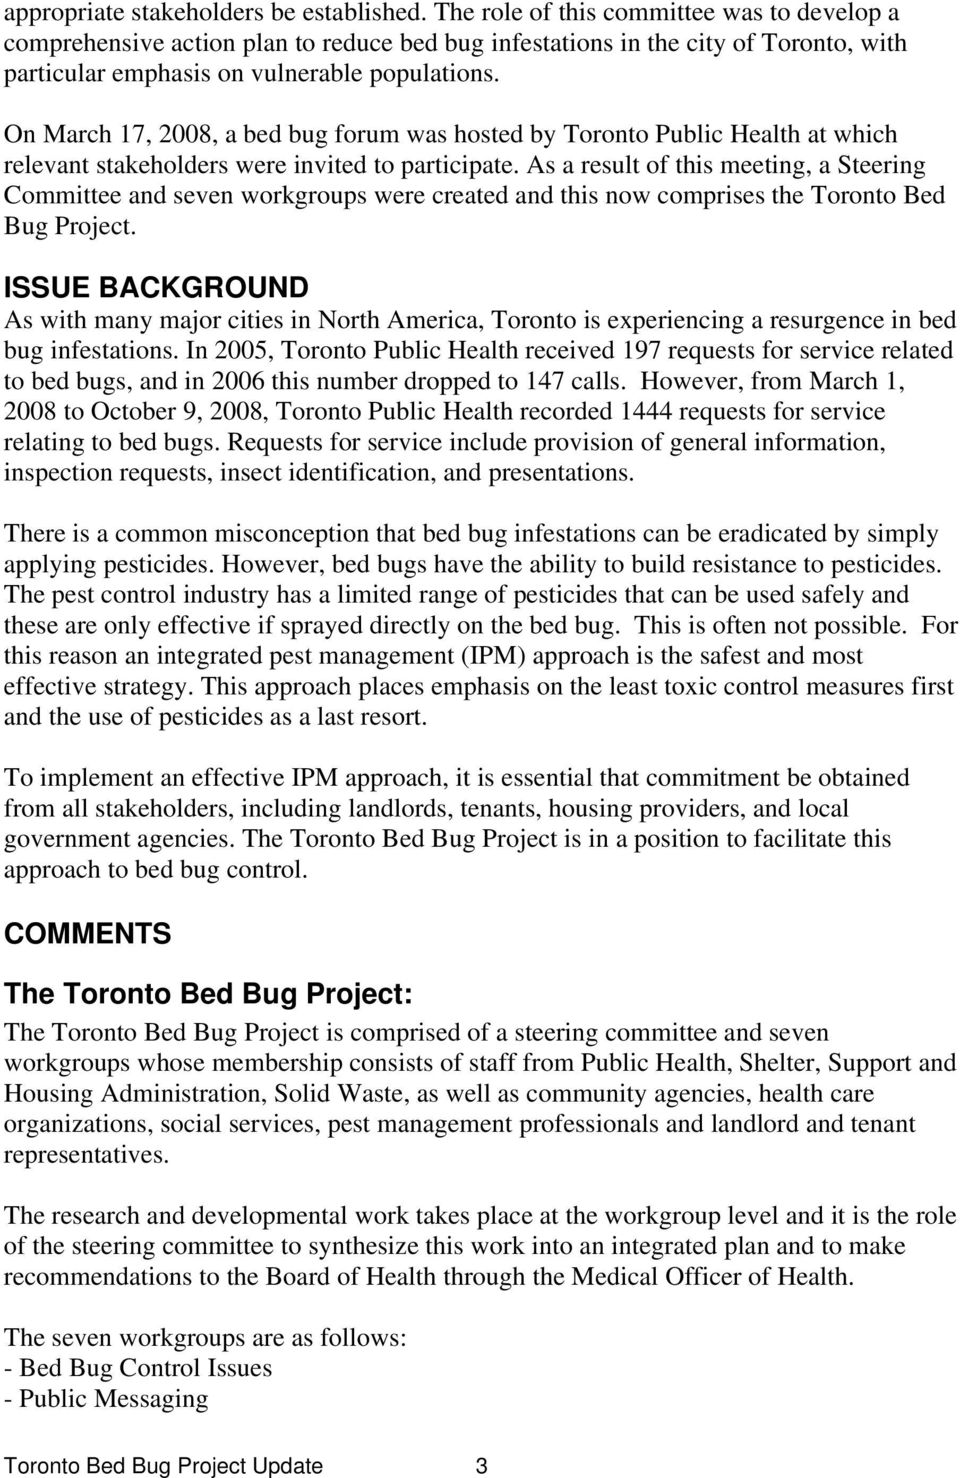 On March 17, 2008, a bed bug forum was hosted by Toronto Public Health at which relevant stakeholders were invited to participate.